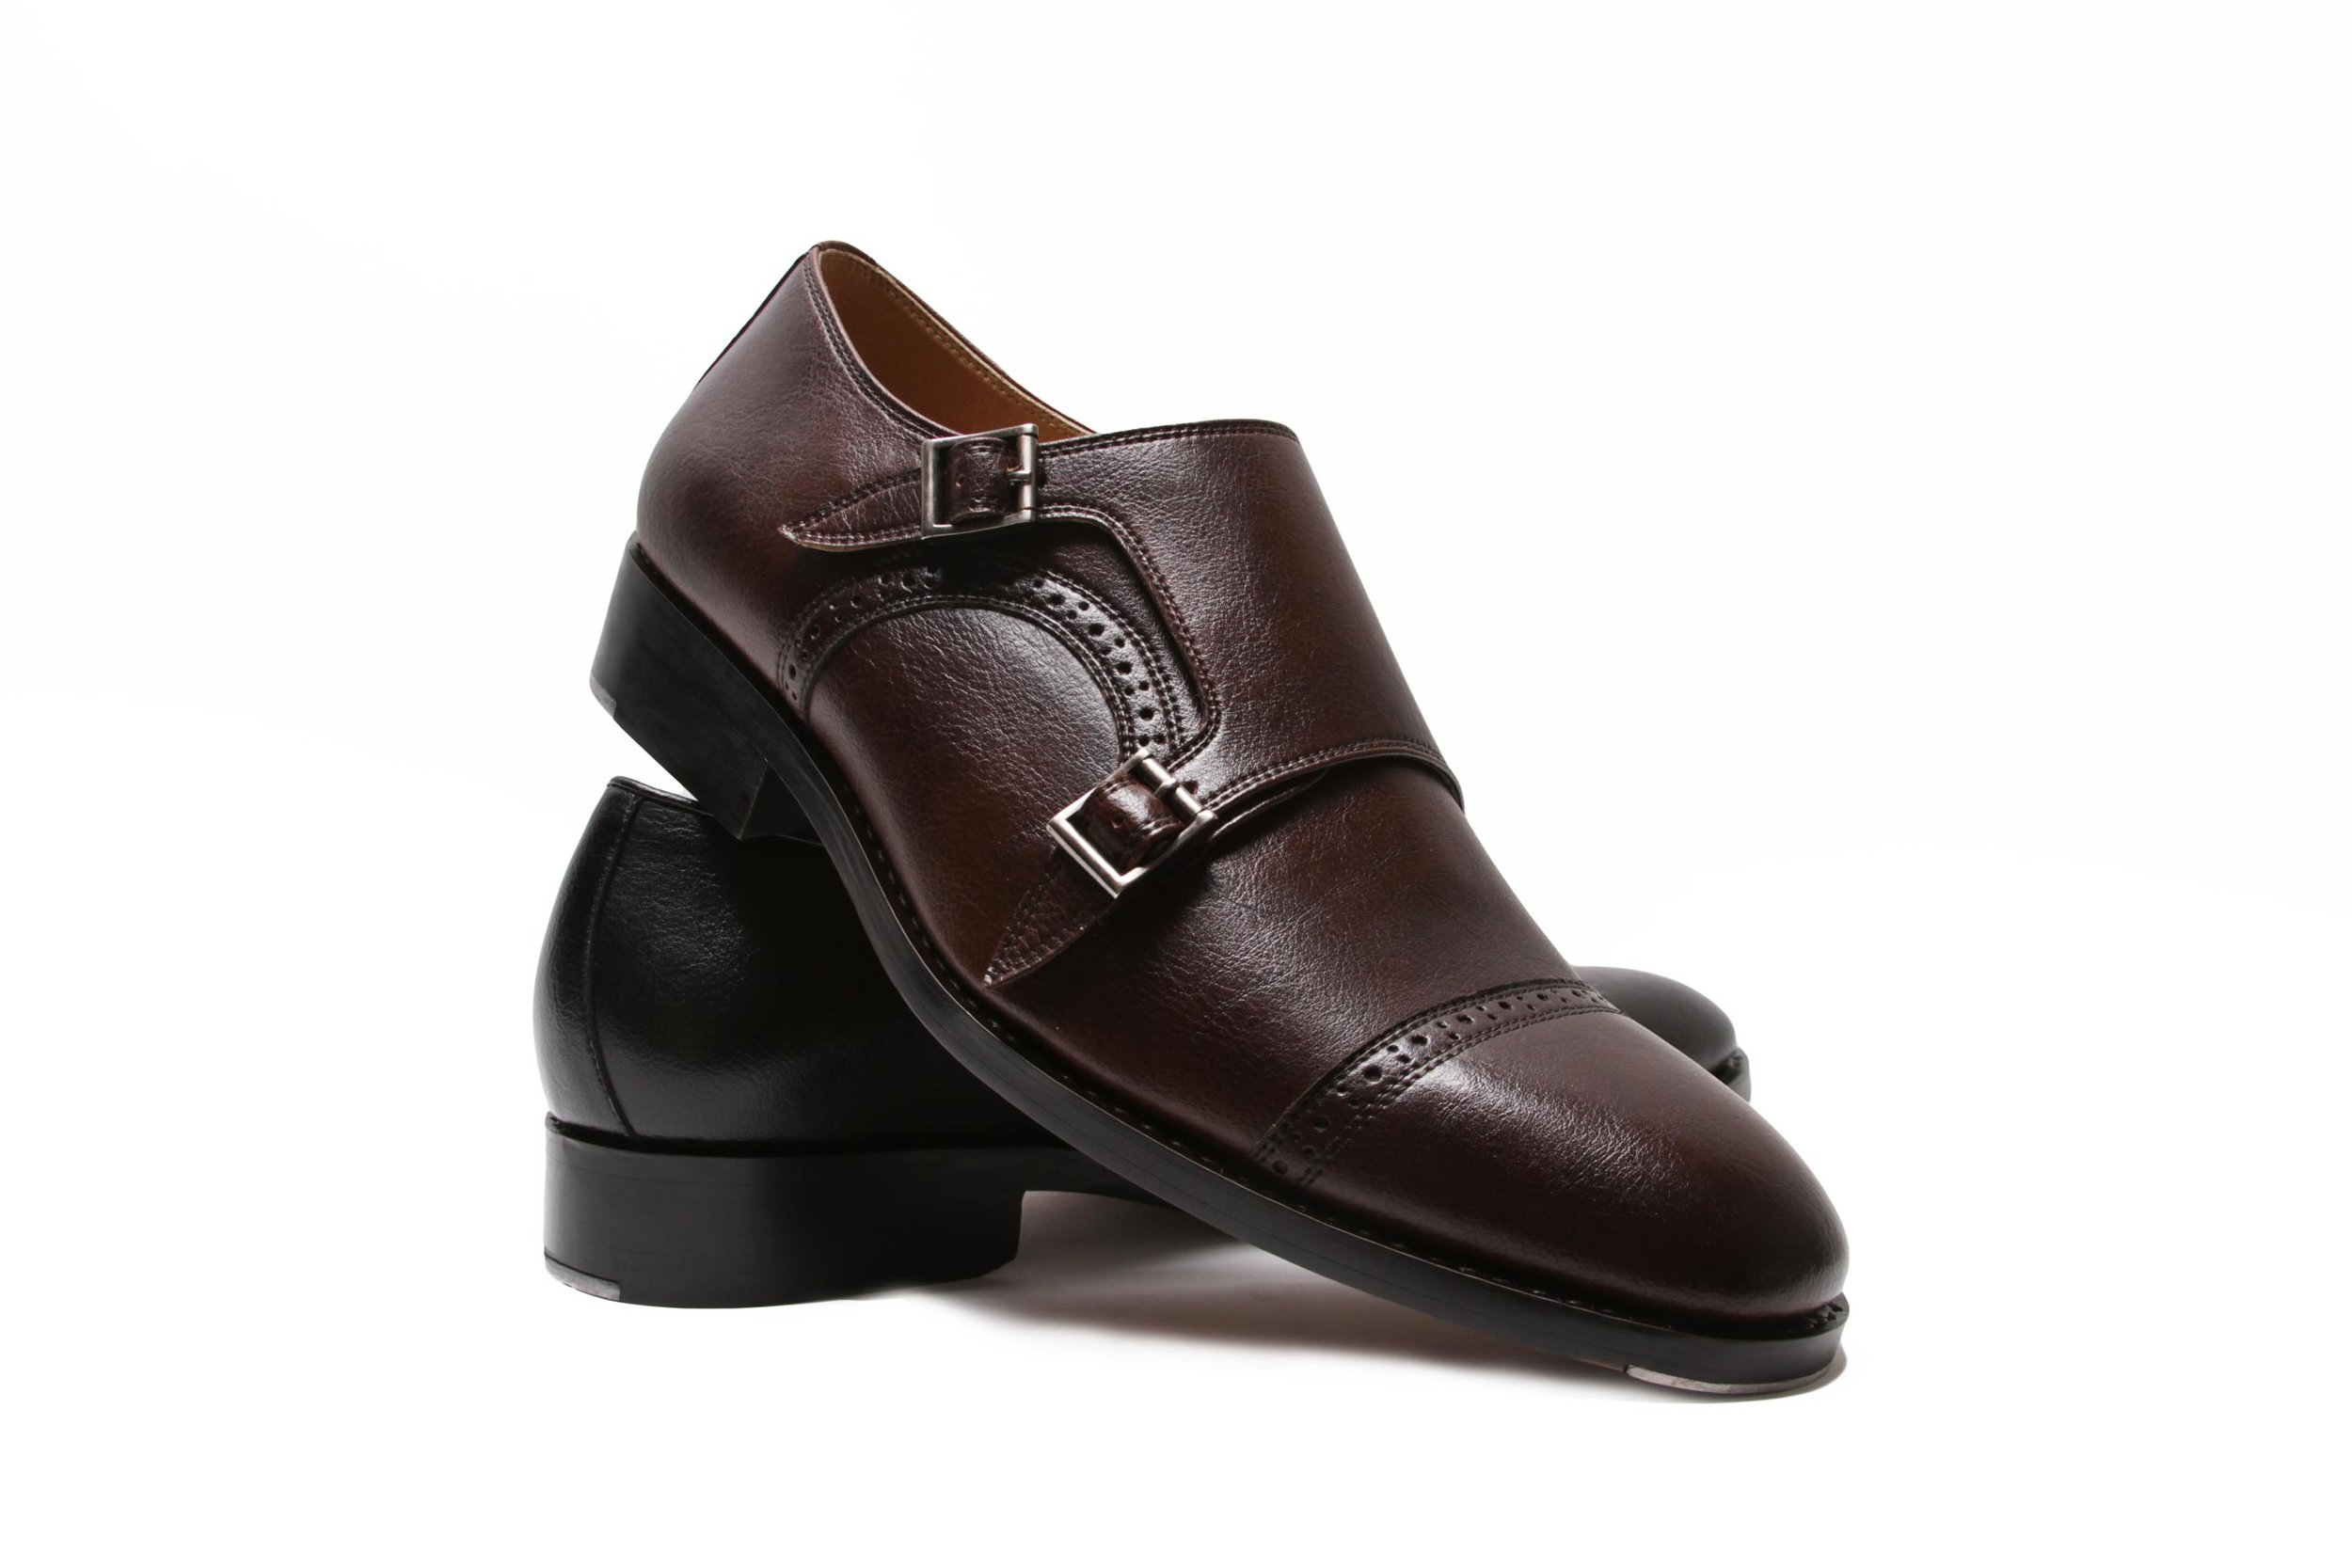 Brave GentleMan   Signature Collection   Shoes start at $640.